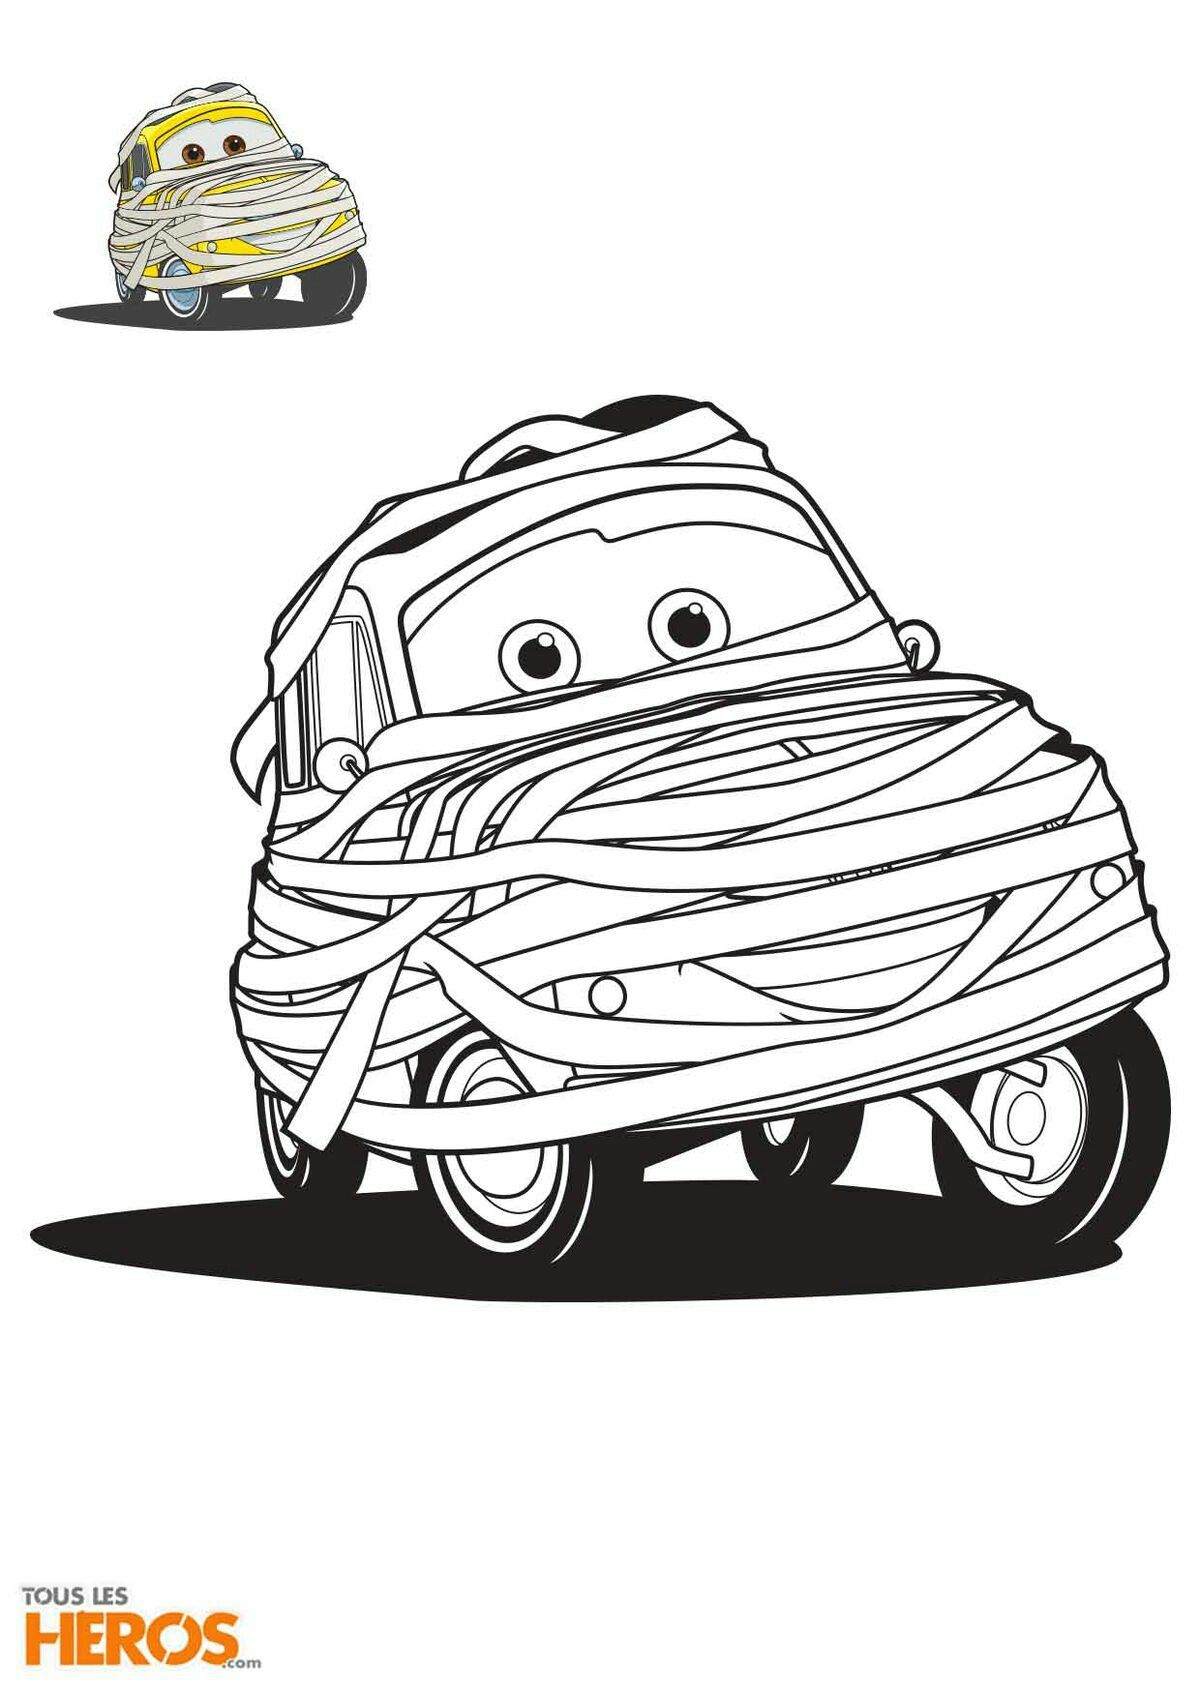 Pin By Julie Brossard On Cars Disney Pixar Cars Coloring Pages Halloween Coloring Sheets Halloween Coloring Pages Printable [ 1697 x 1200 Pixel ]